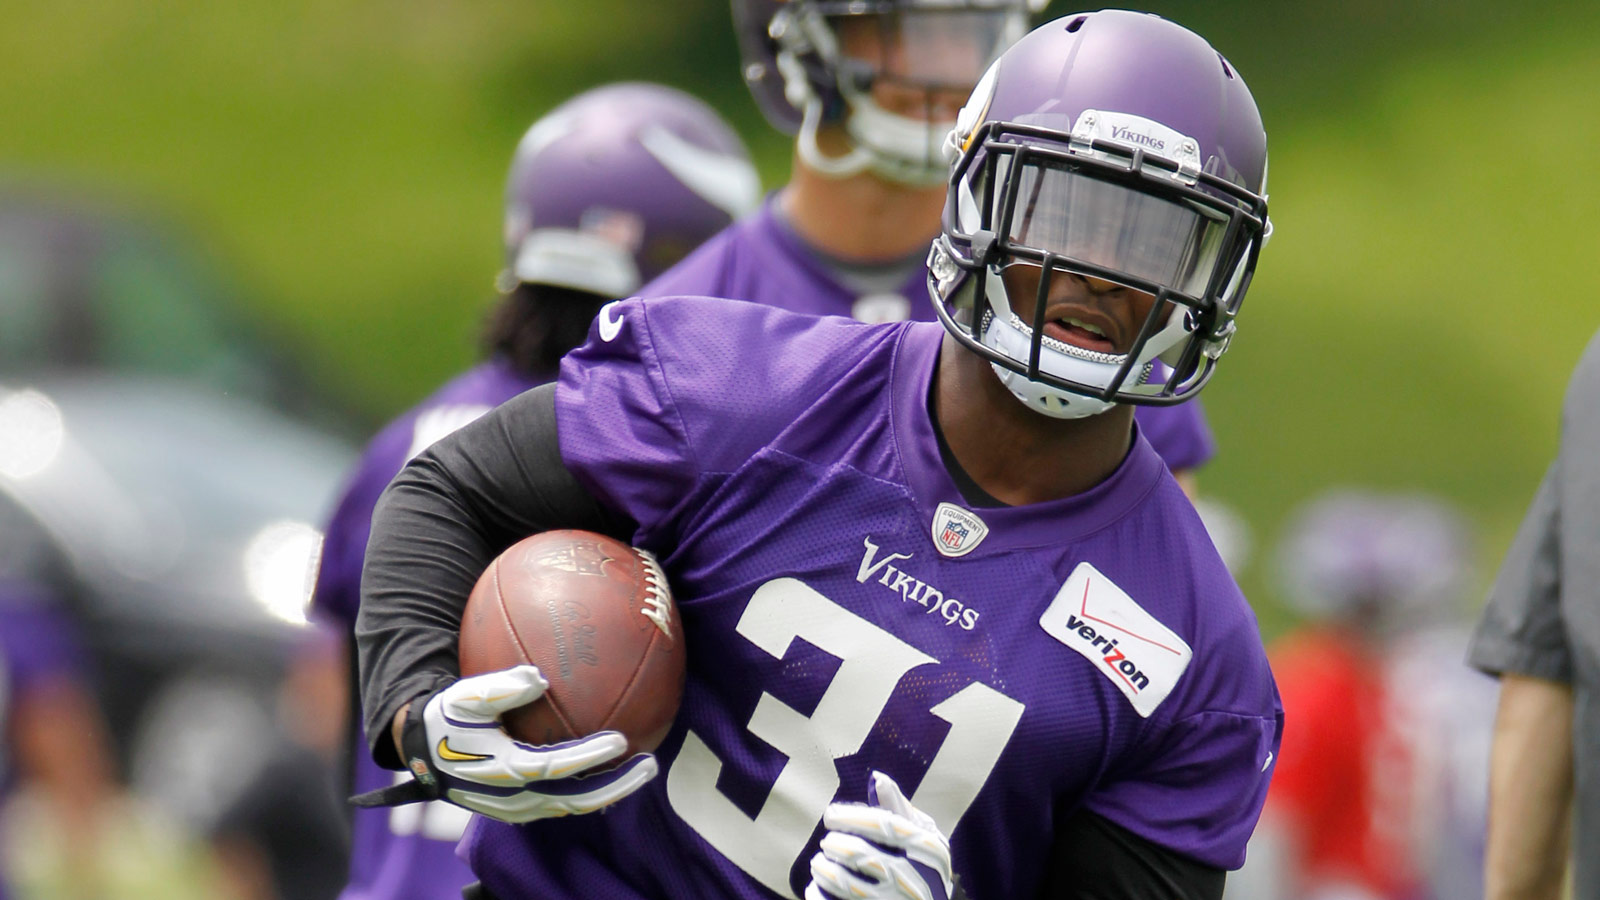 Minnesota Vikings RB Jerick McKinnon aims to be a more complete player